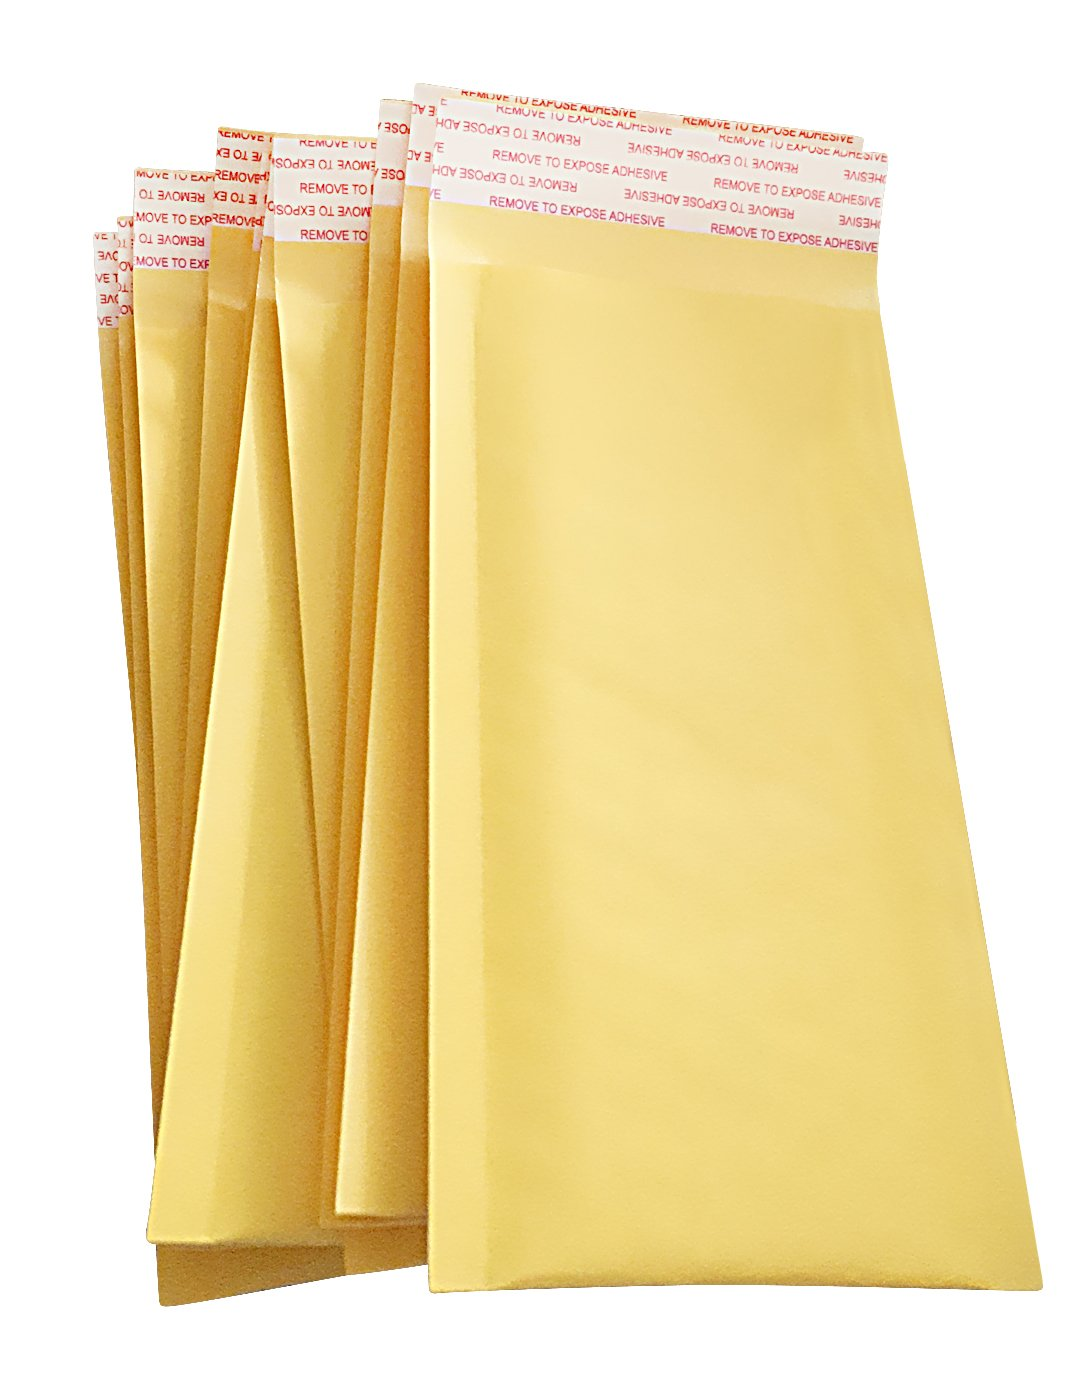 HAI-RAAN 000 supreme Kraft Bubble Mailers 50 Padded Pack 4x8 Self-Seal Popular brand in the world